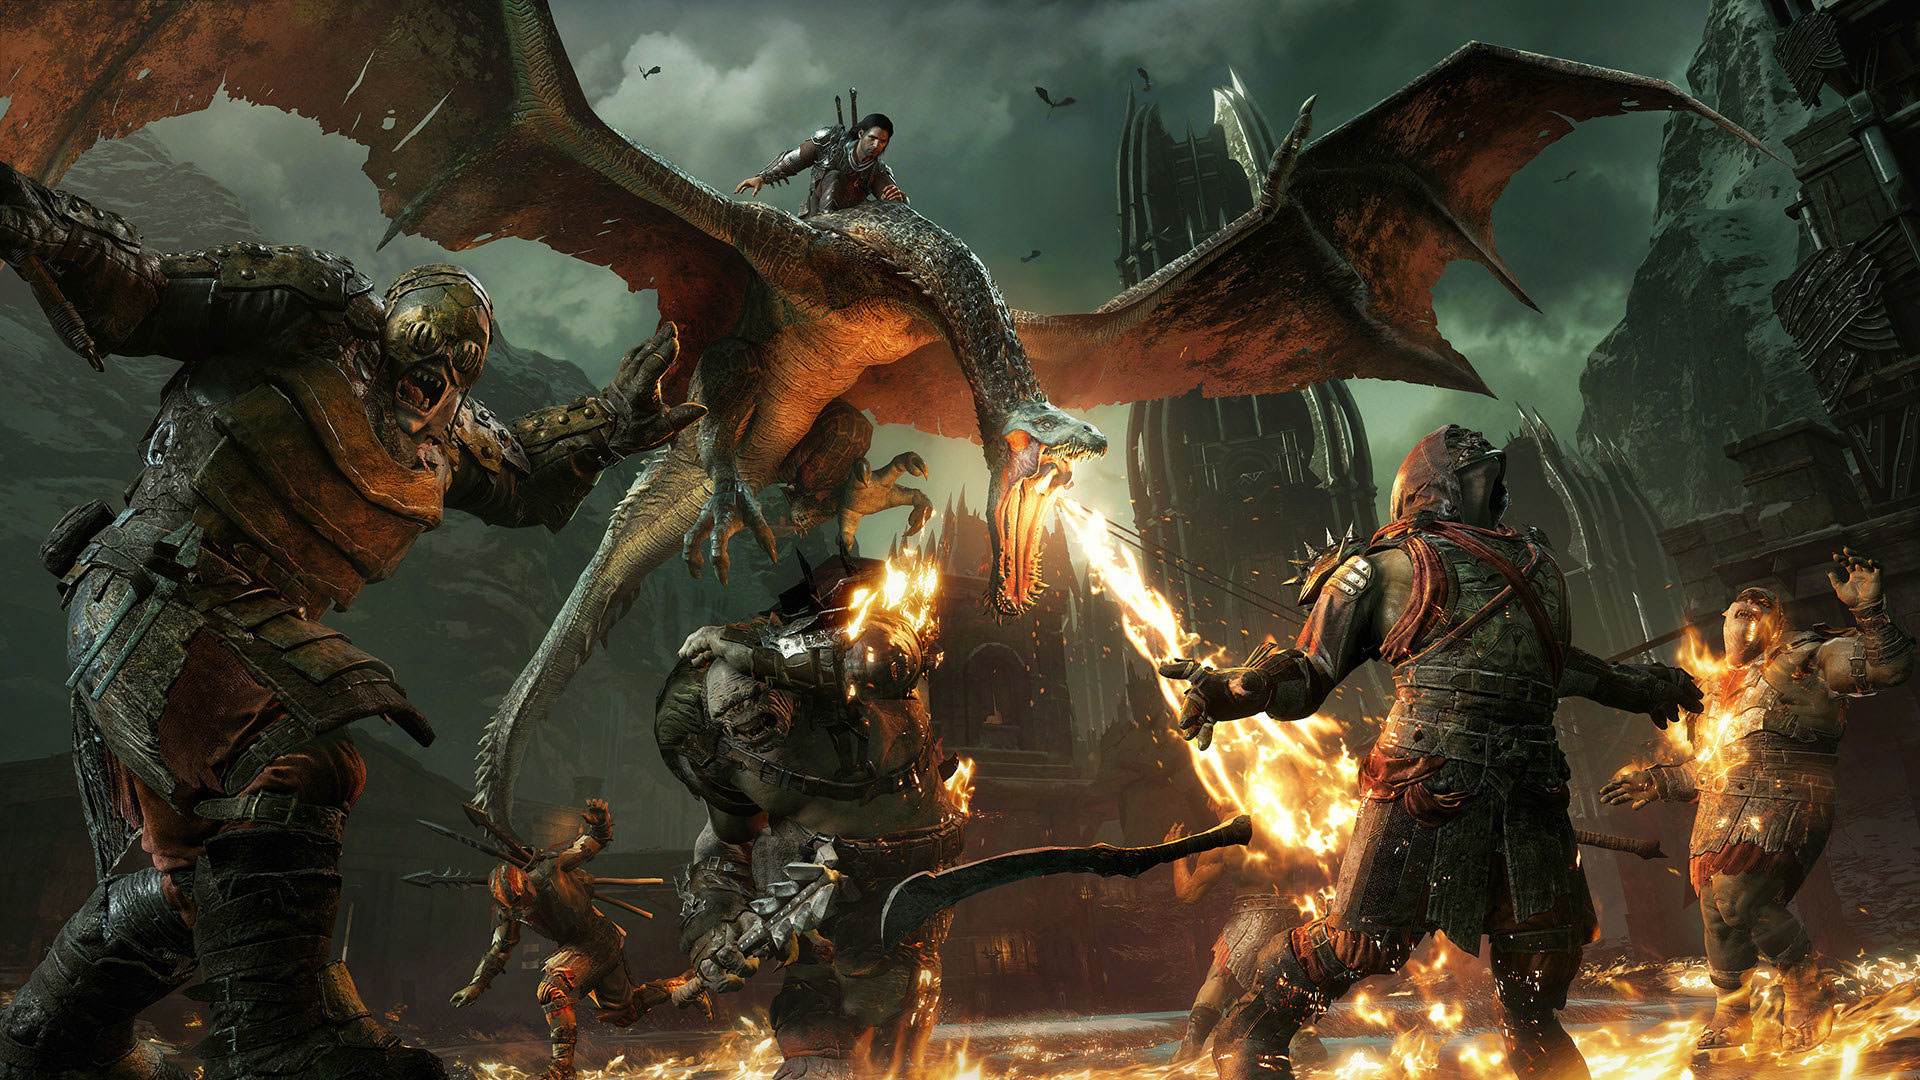 Middle-earth: Shadow of War's Forthog DLC Will Be Free